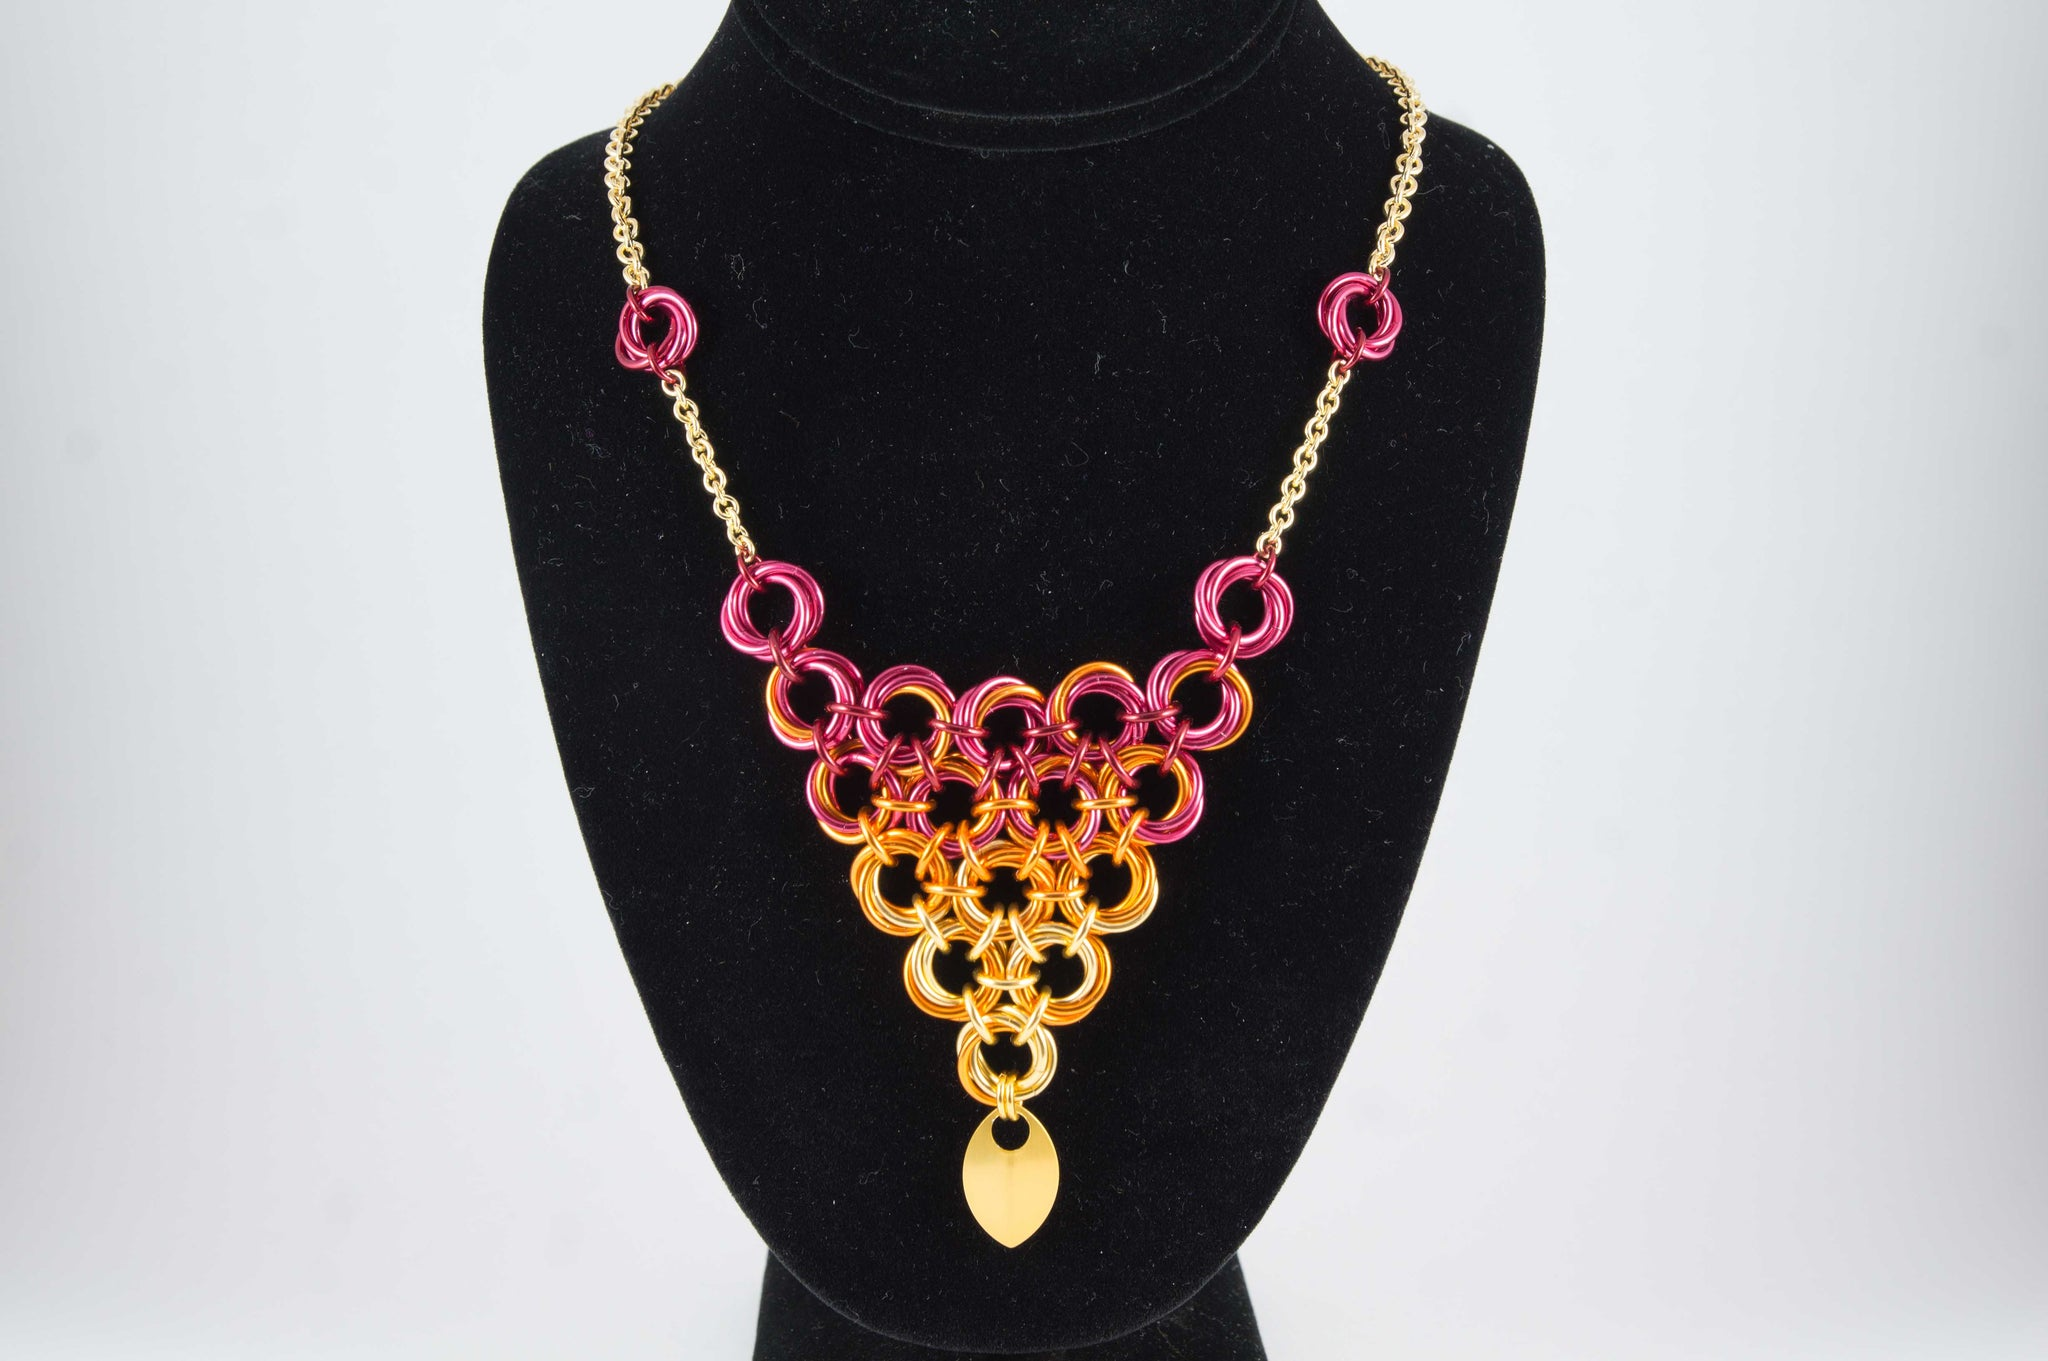 Knotted Triangle Necklace - 30% off